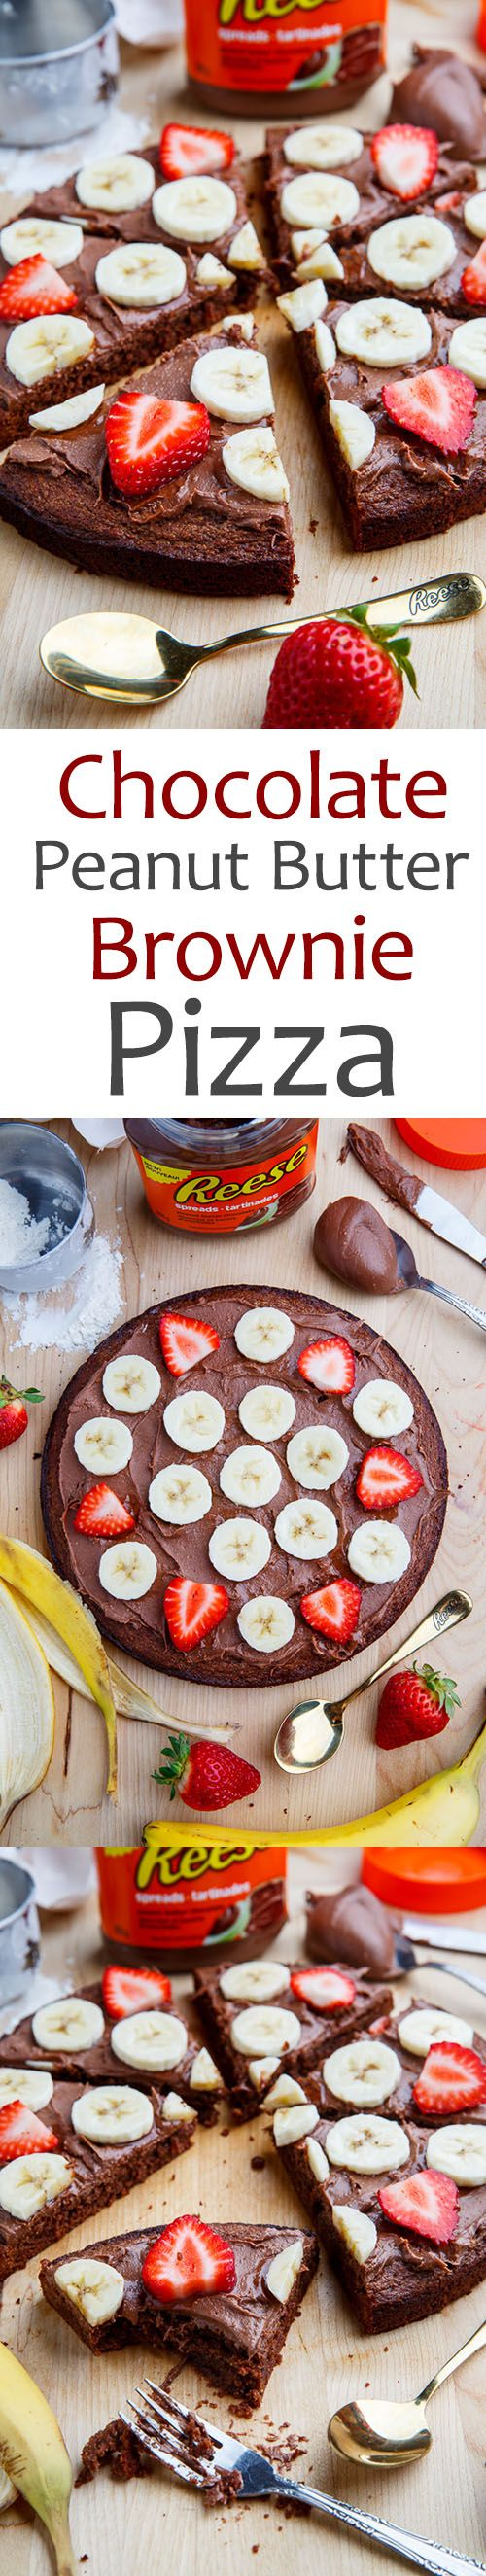 Chocolate Peanut Butter Brownie Pizza